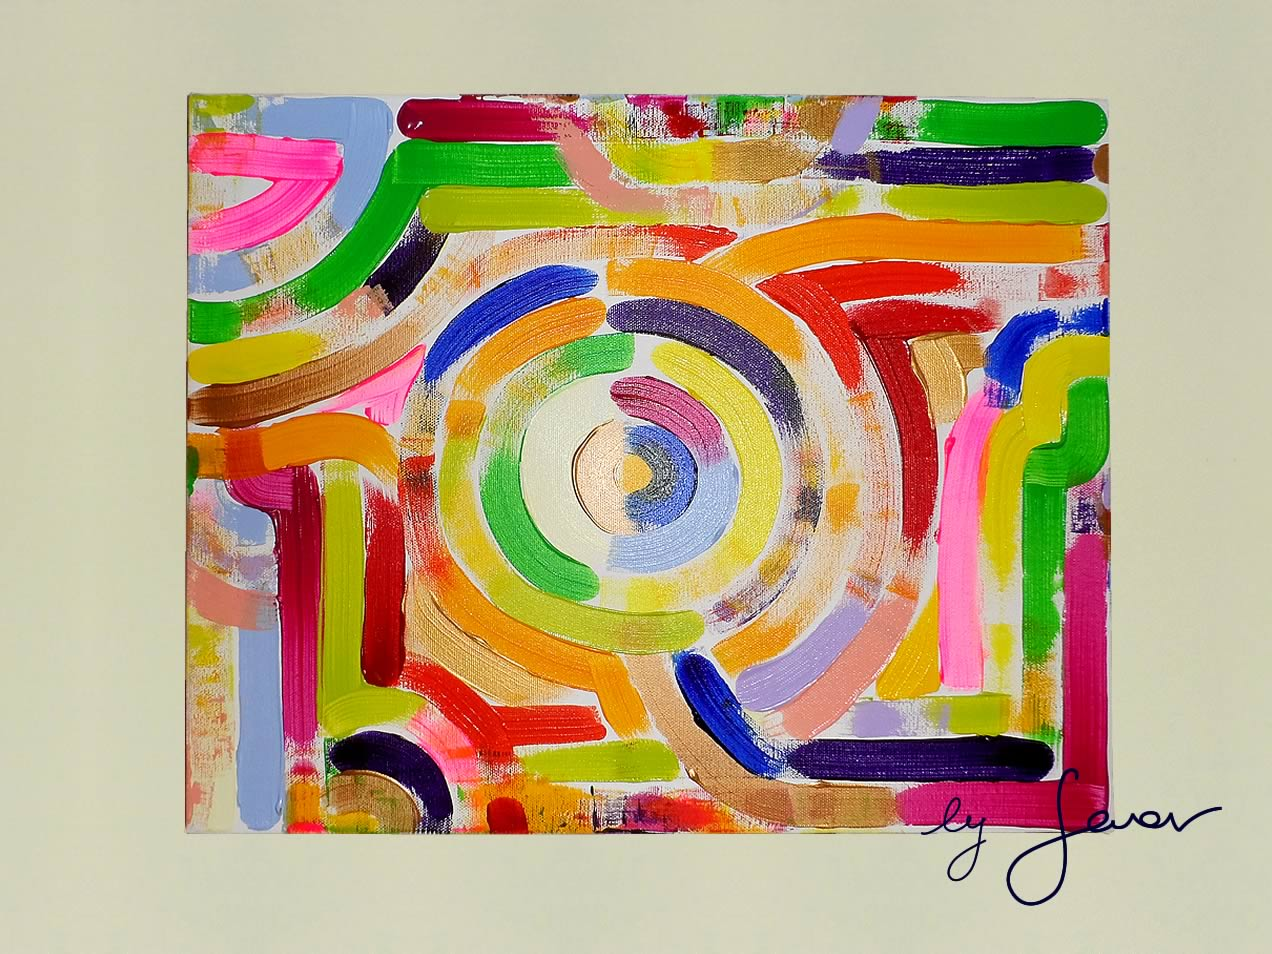 Dance of Life, Painting No. 23 by Swav